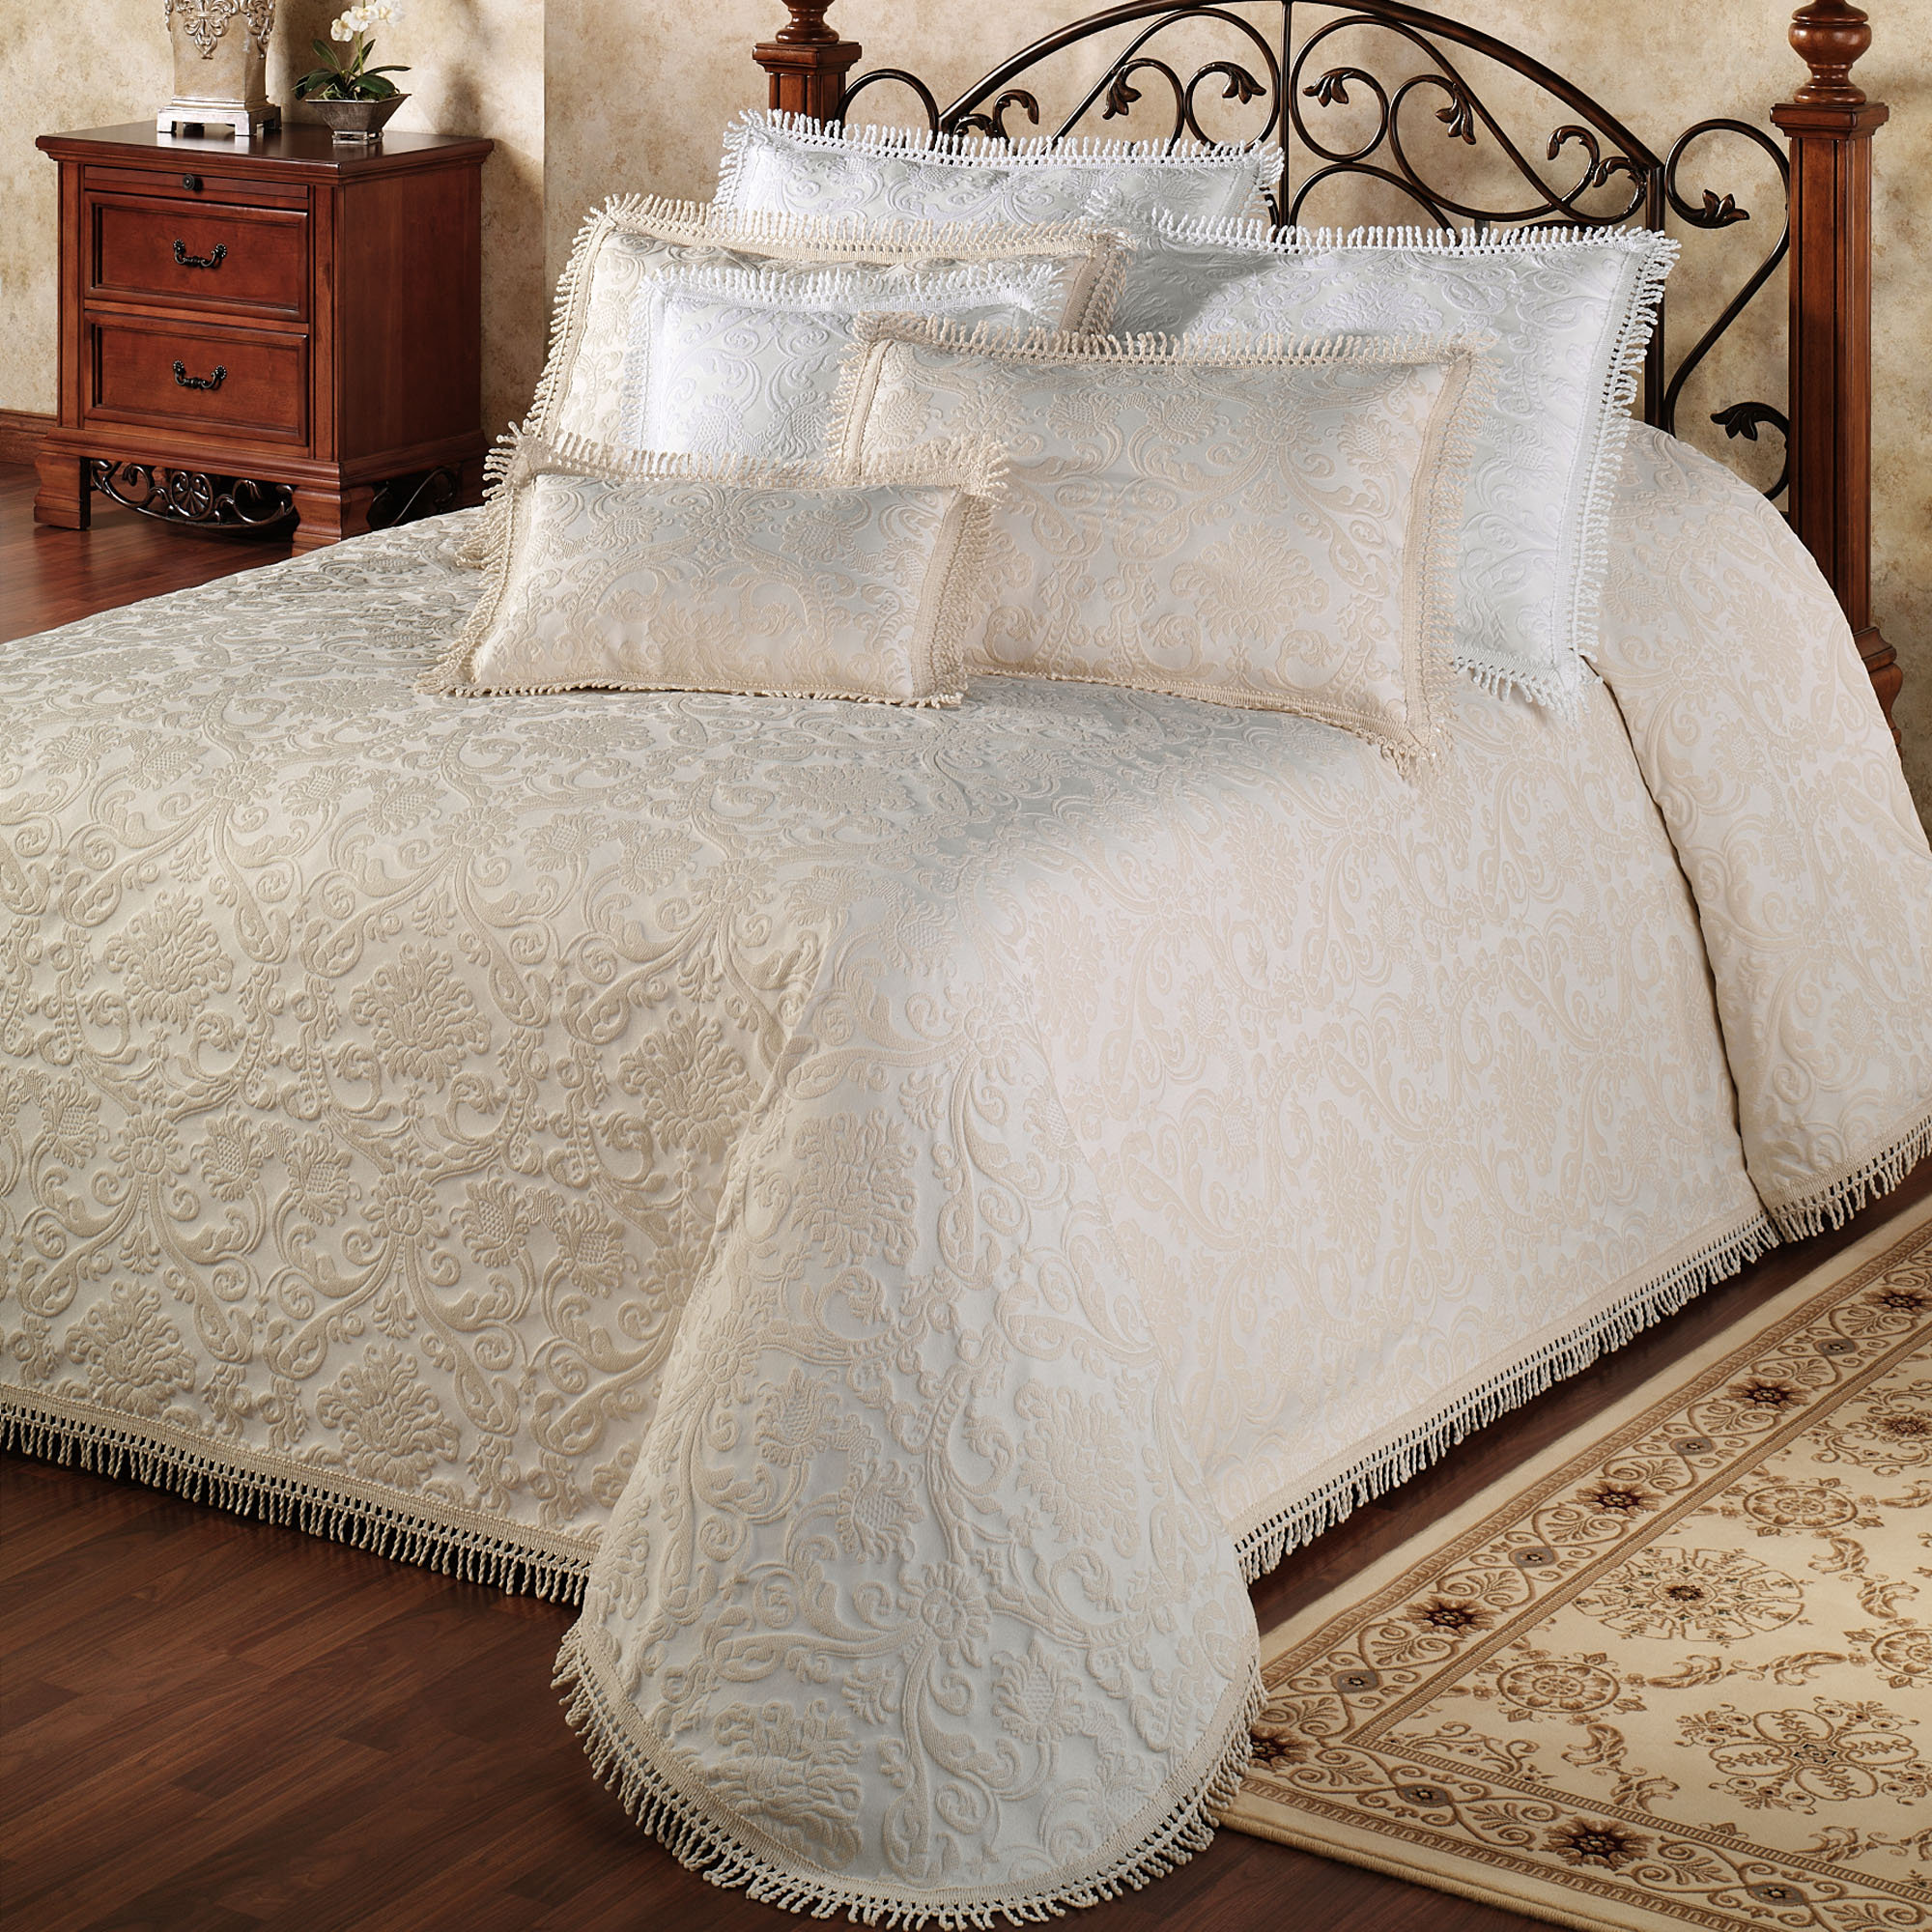 King Size Quilted Bedspreads | Matelasse Bedspreads King | Matelasse Bedspreads